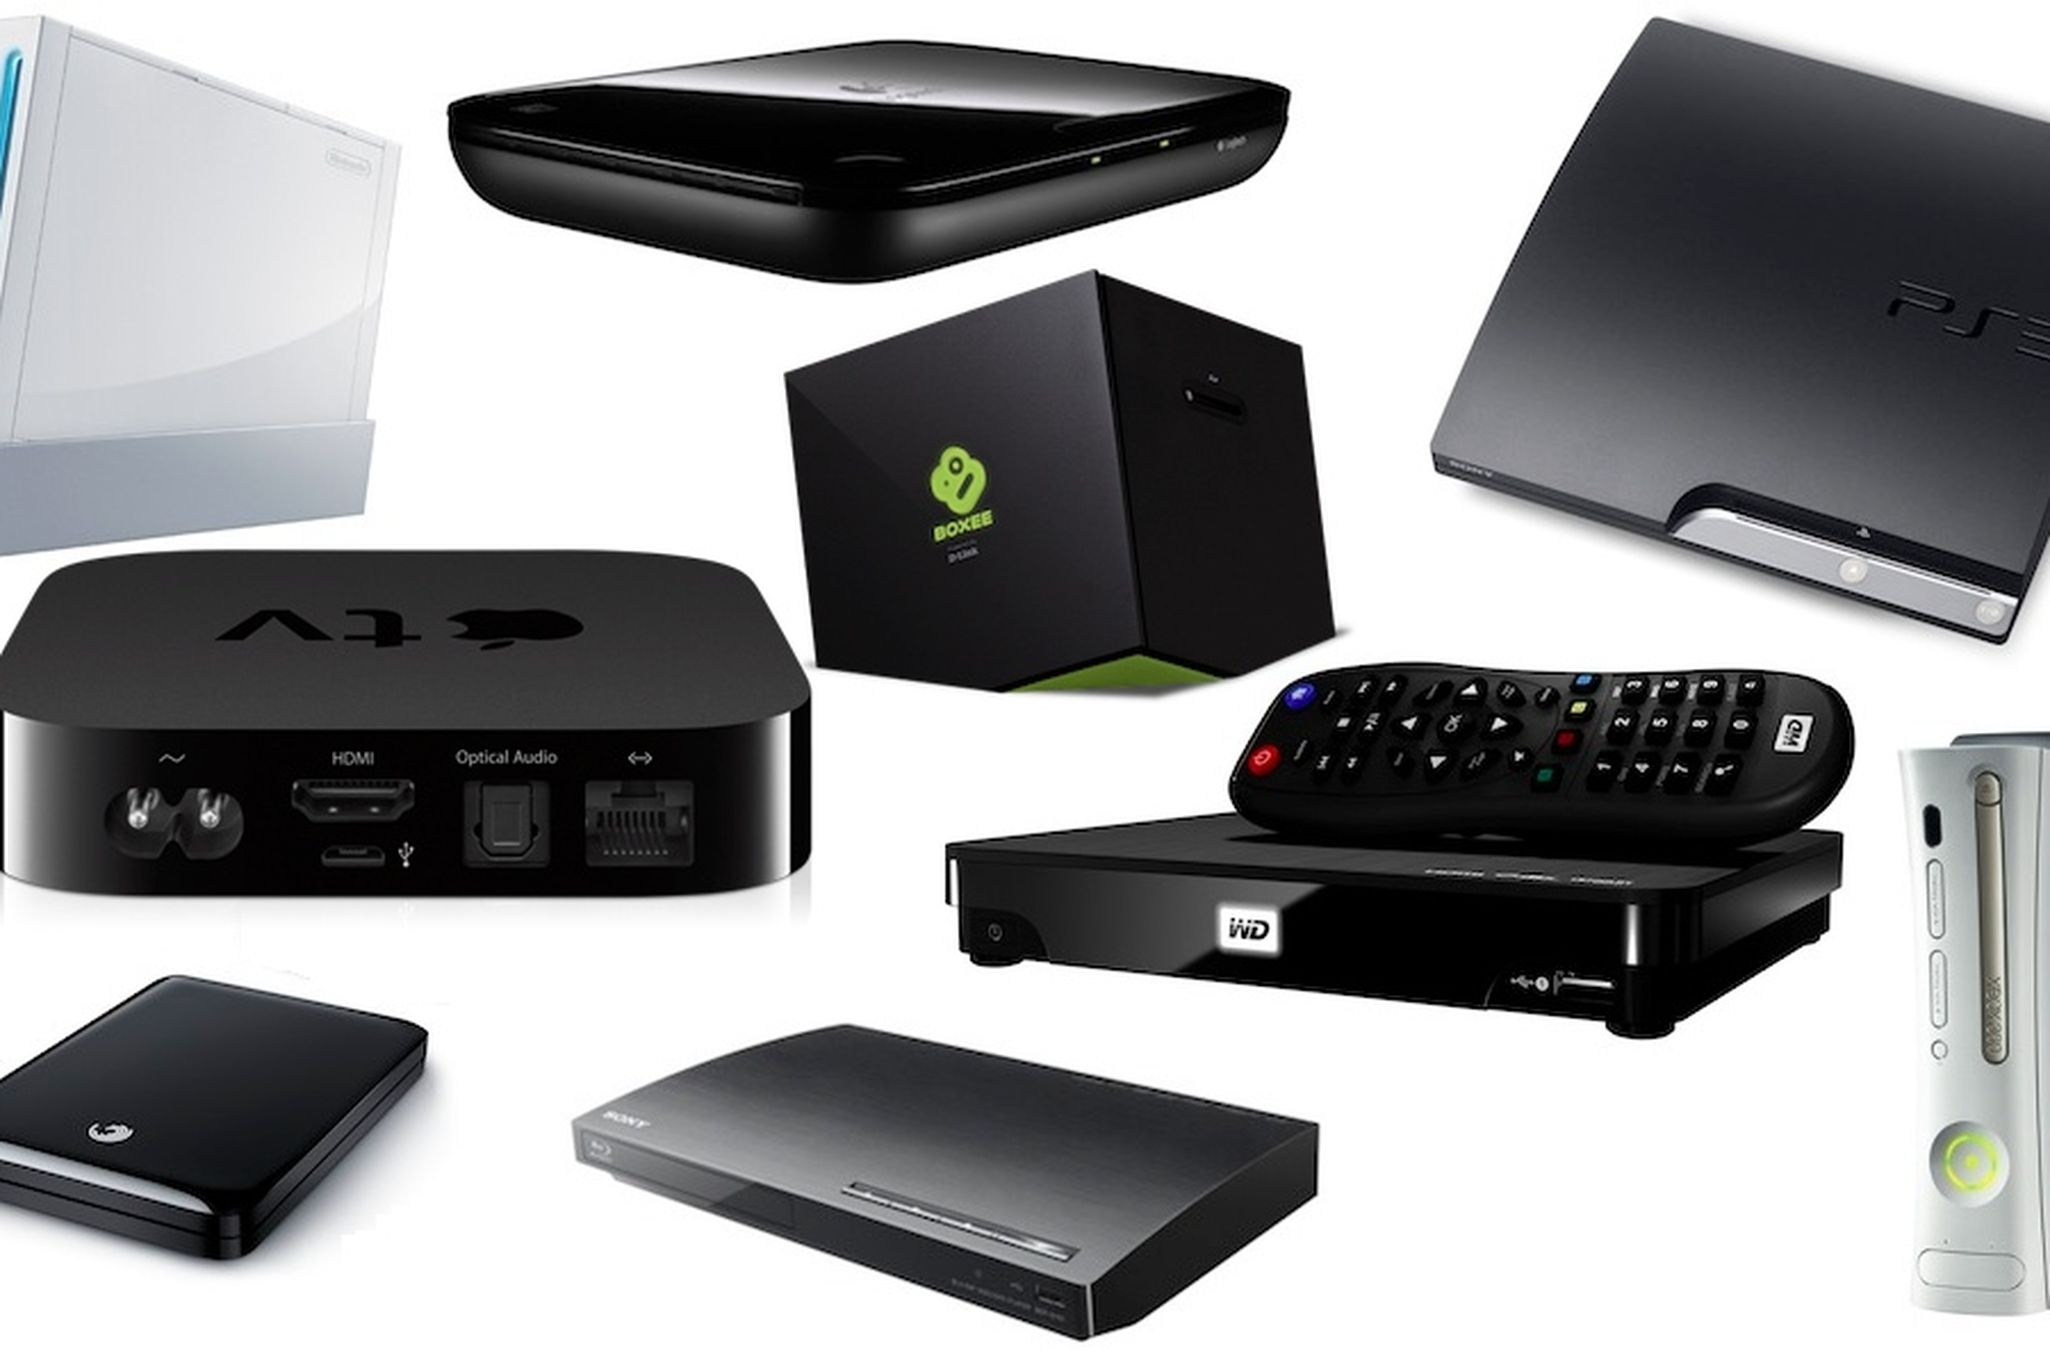 Set-Top Boxes Market Is Projected To Register A Healthy CAGR Of +7.45% By 2026 With Top Key Players Huawei Technologies Co., Ltd., Apple Inc., SAMSUNG, Echostar Corporation, Technicolor 1